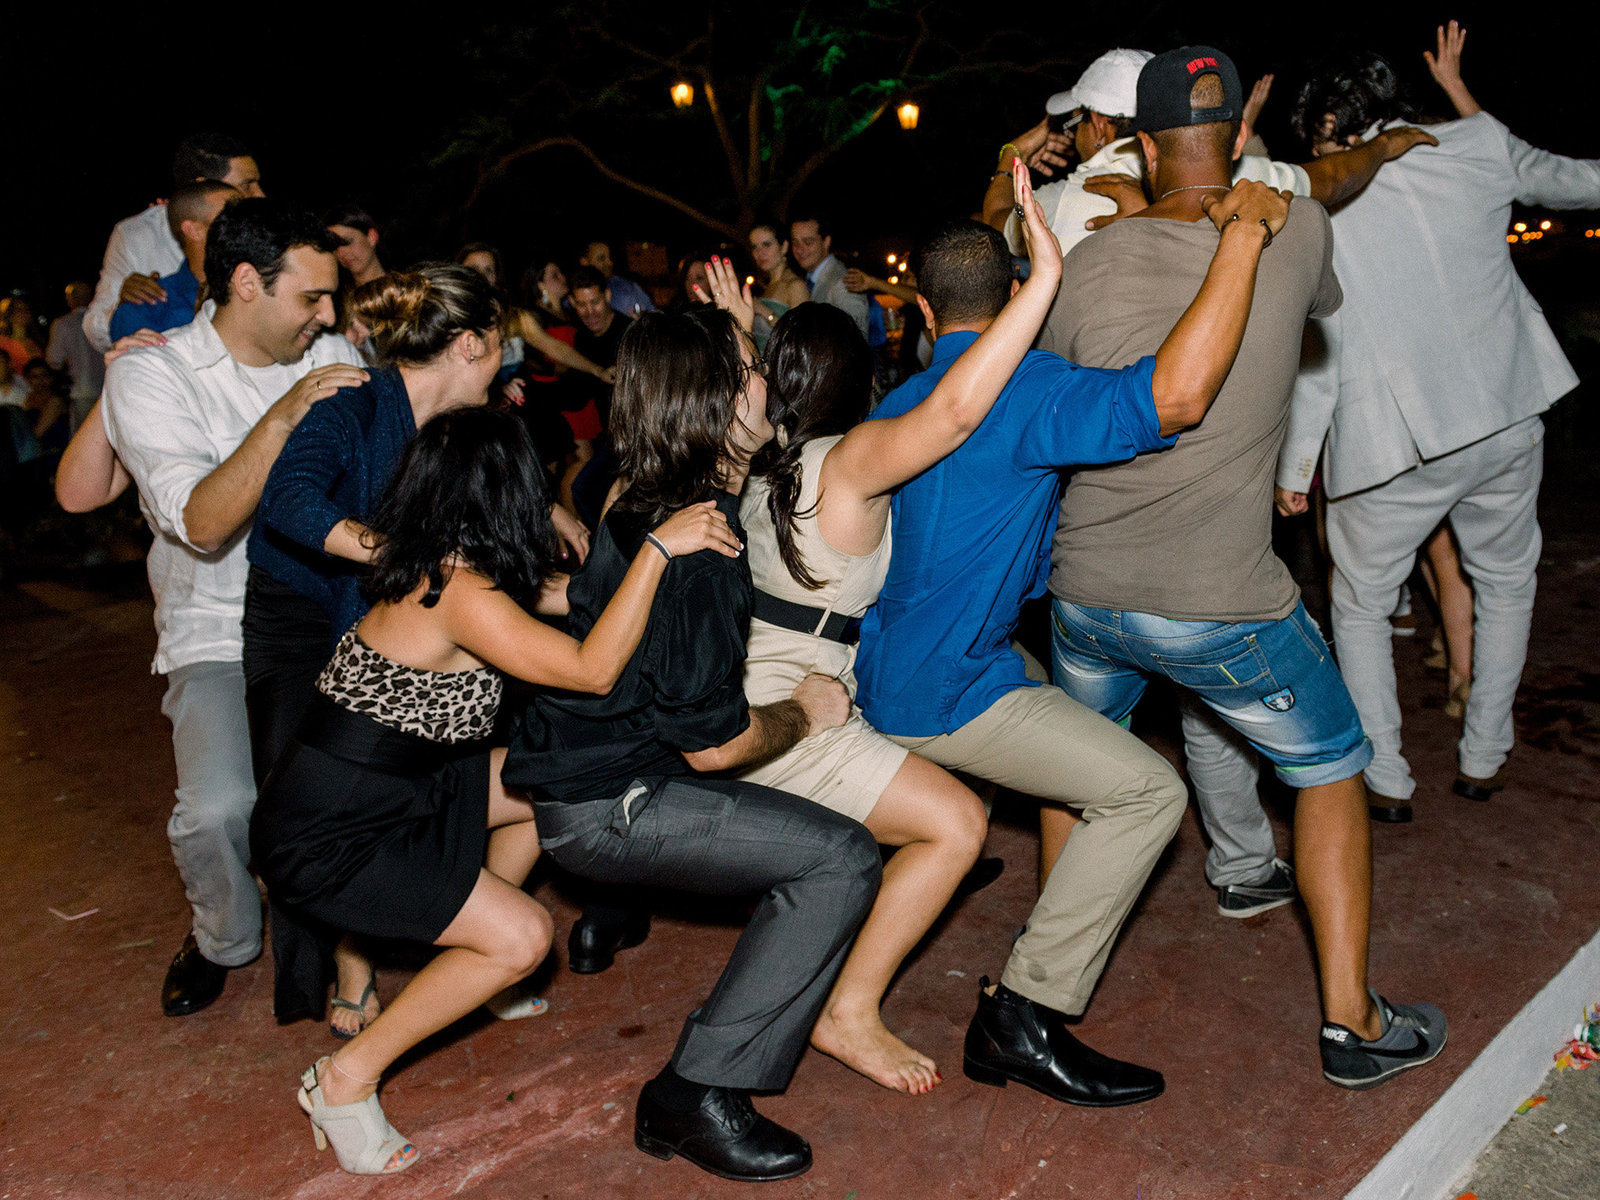 20150329-Pura-Soul-Photo-Cuba-Wedding-8